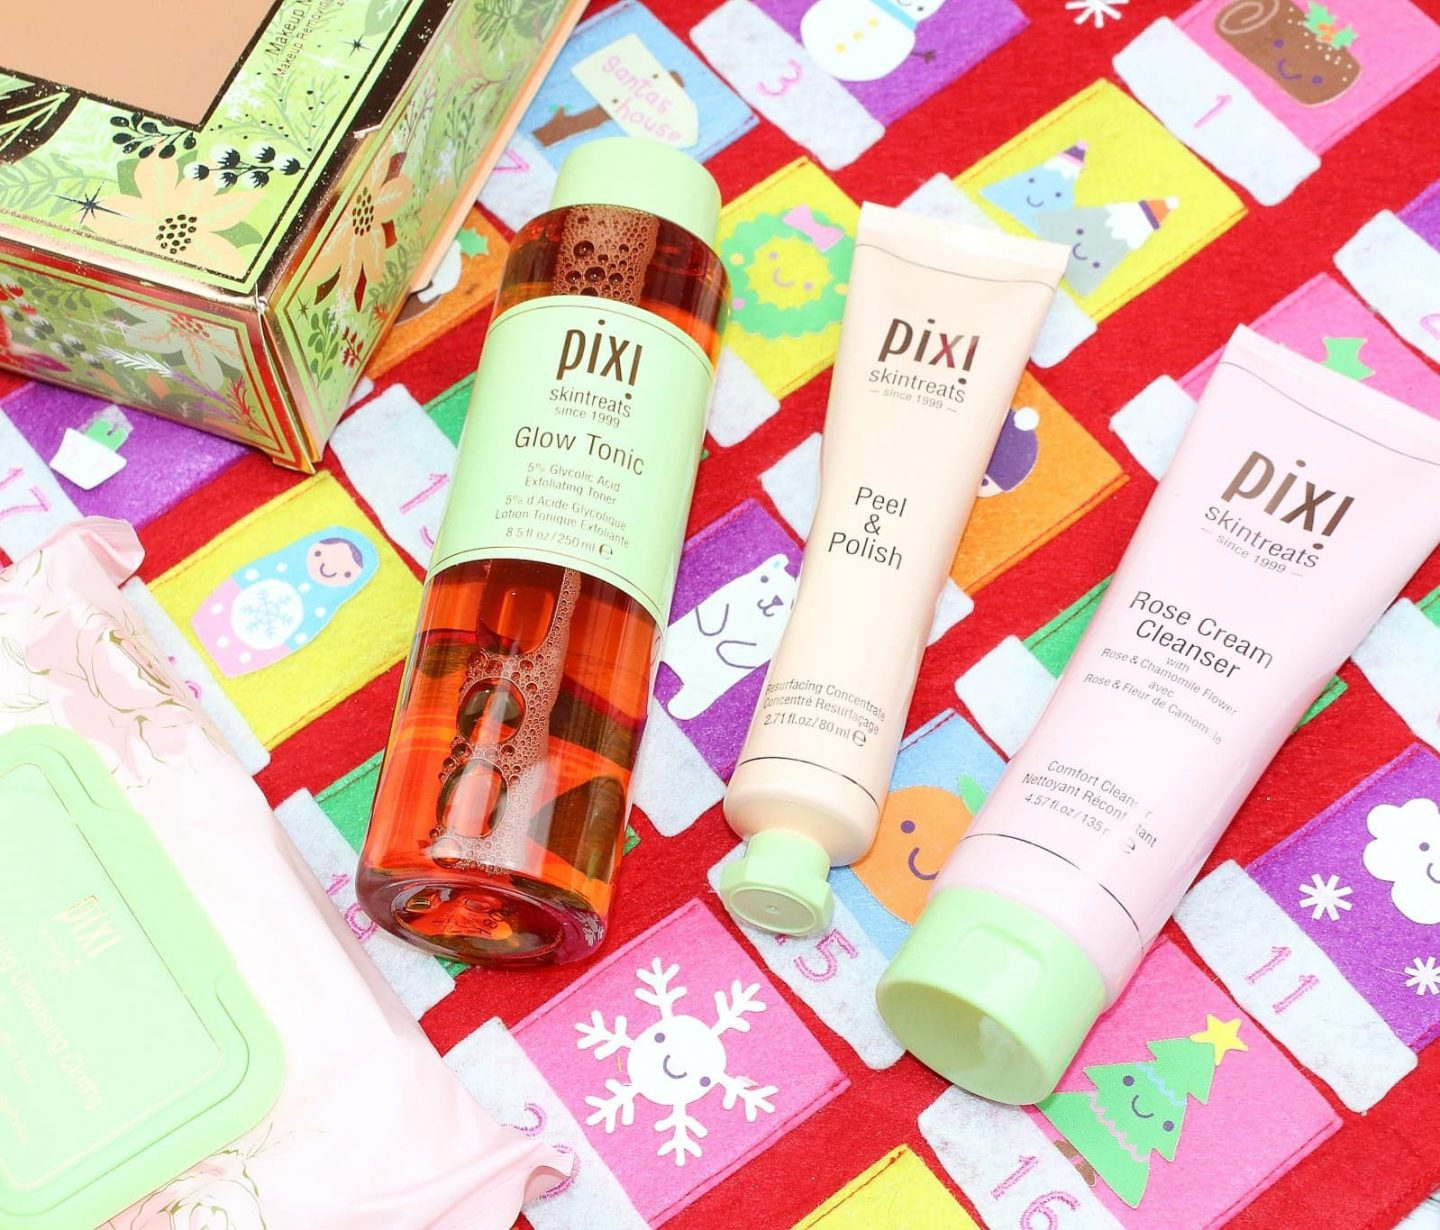 The Box of Beautiful Skincare Set by Pixi Now at Marks & Spencer